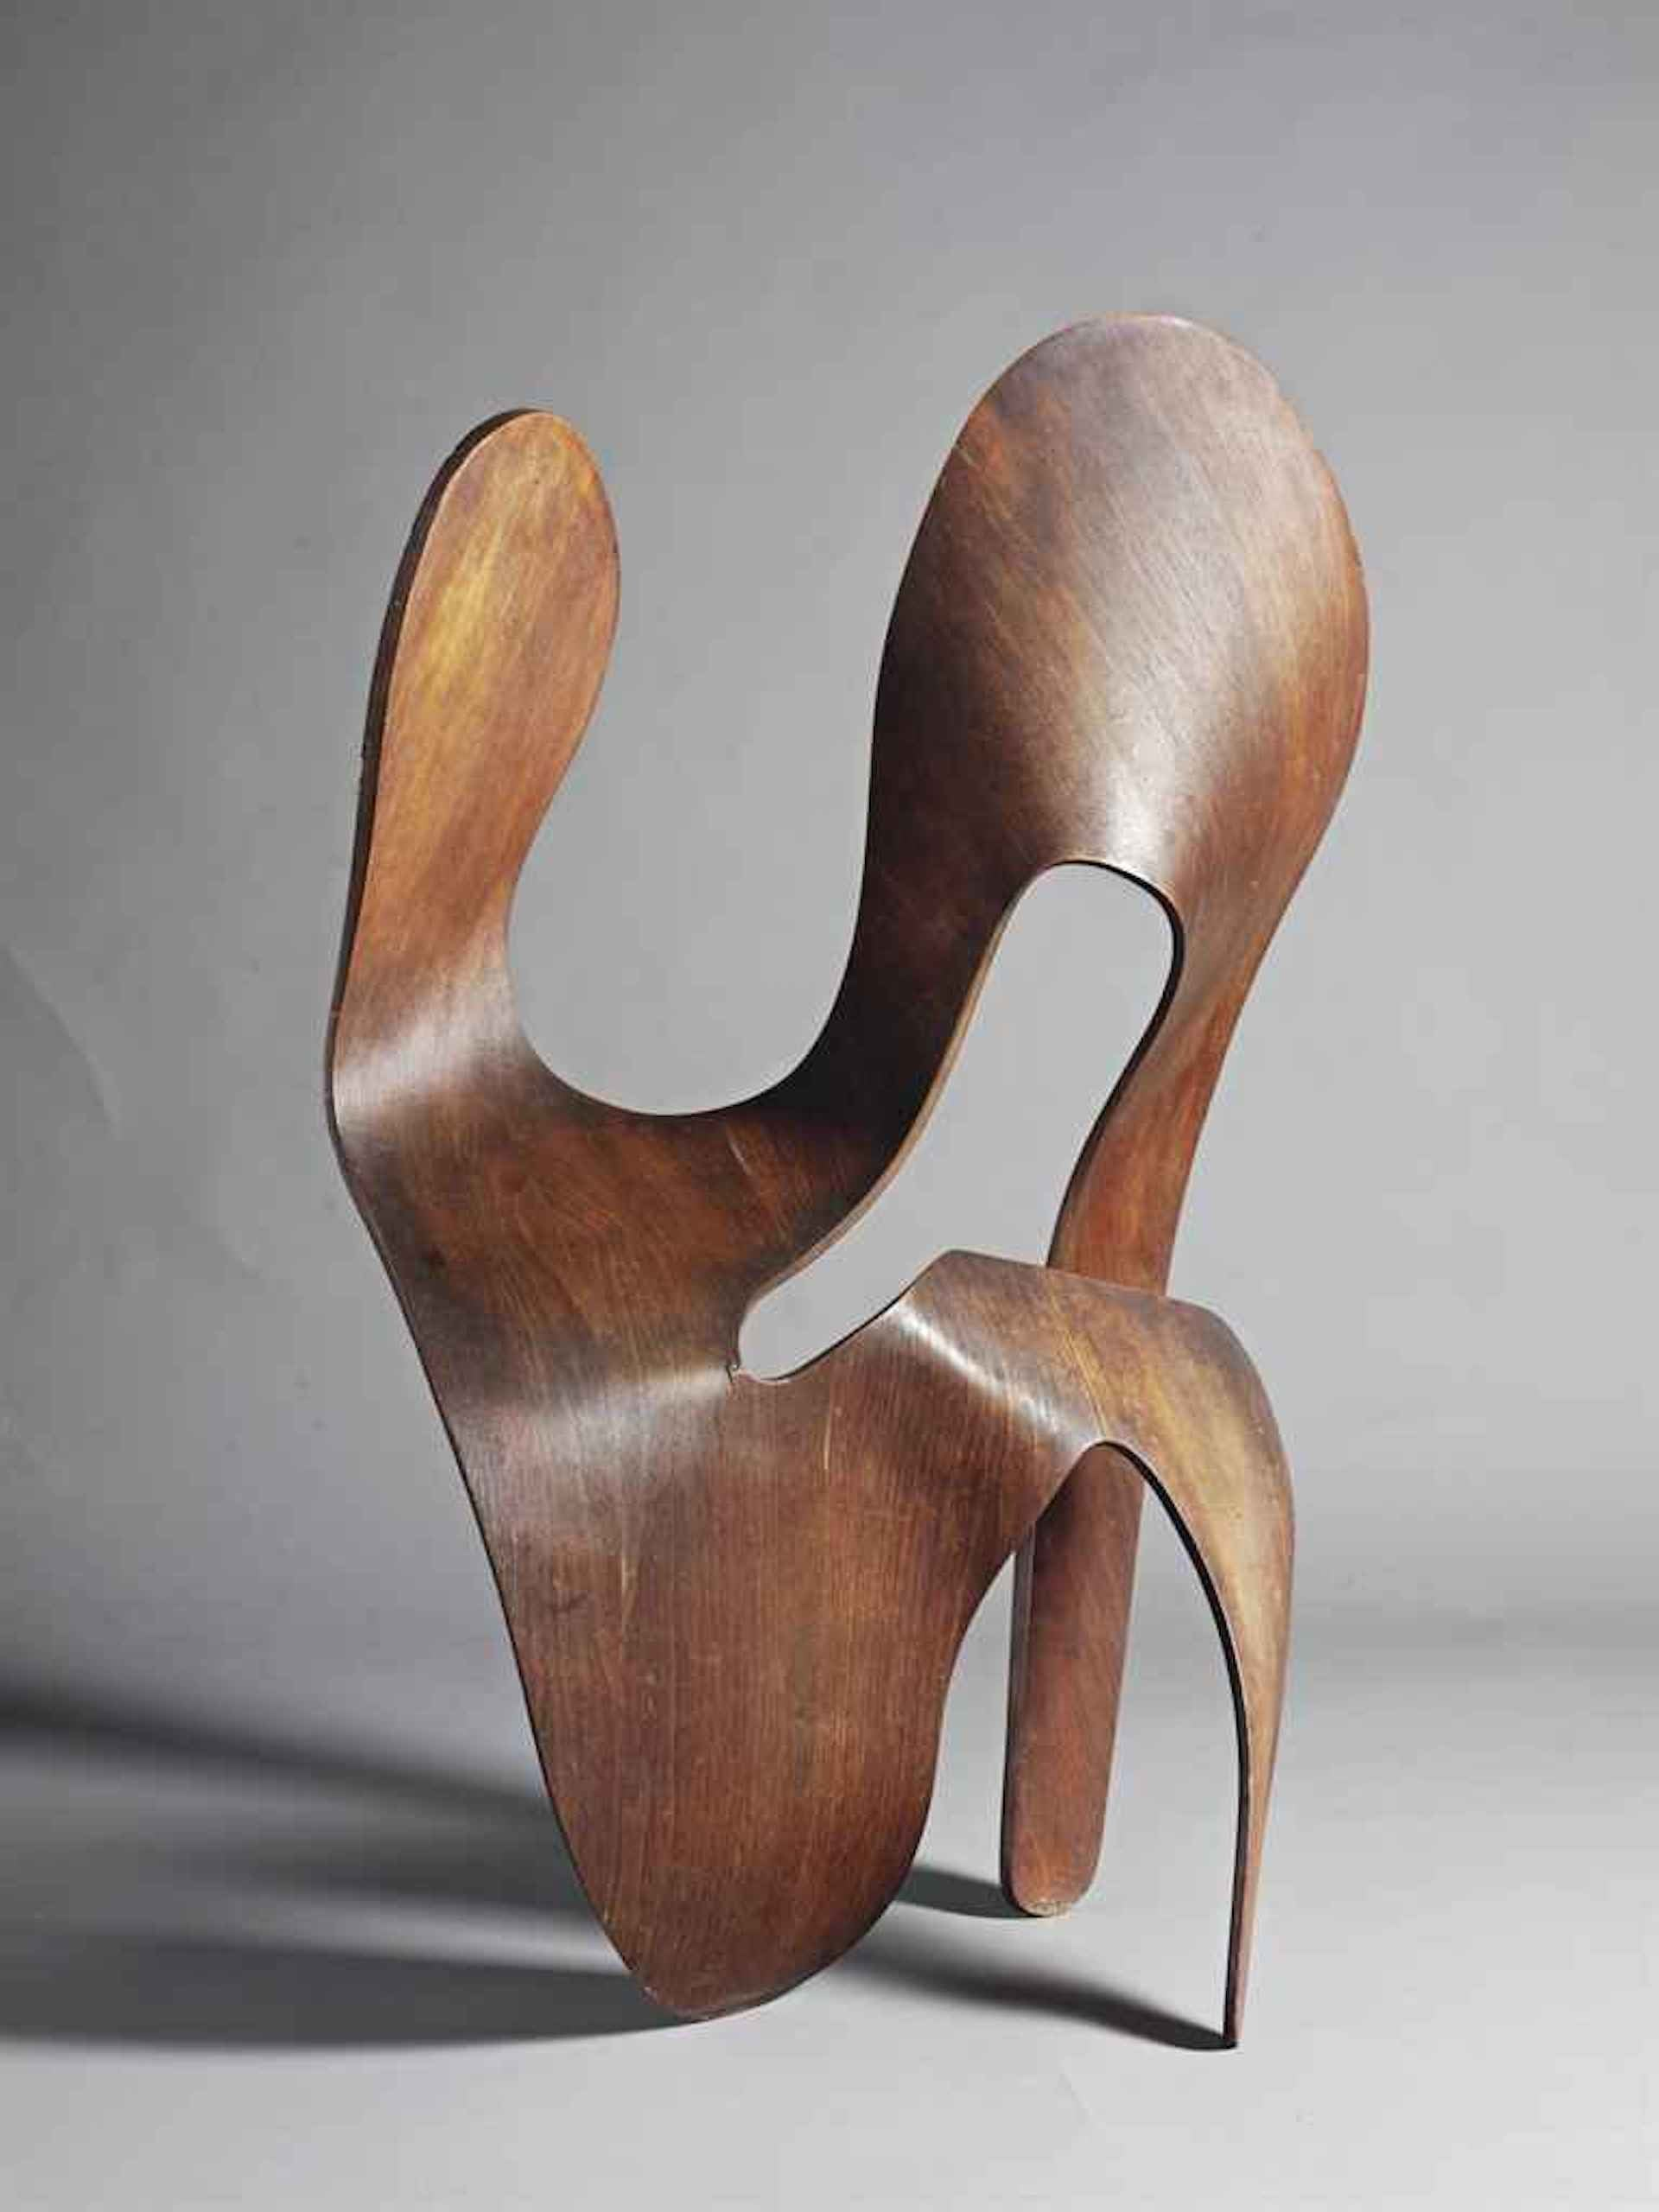 Unique Plywood Sculpture by Charles & Ray Eames, 1943. Sold at Christie's in 1999 for $365,500. Photo © Christie's